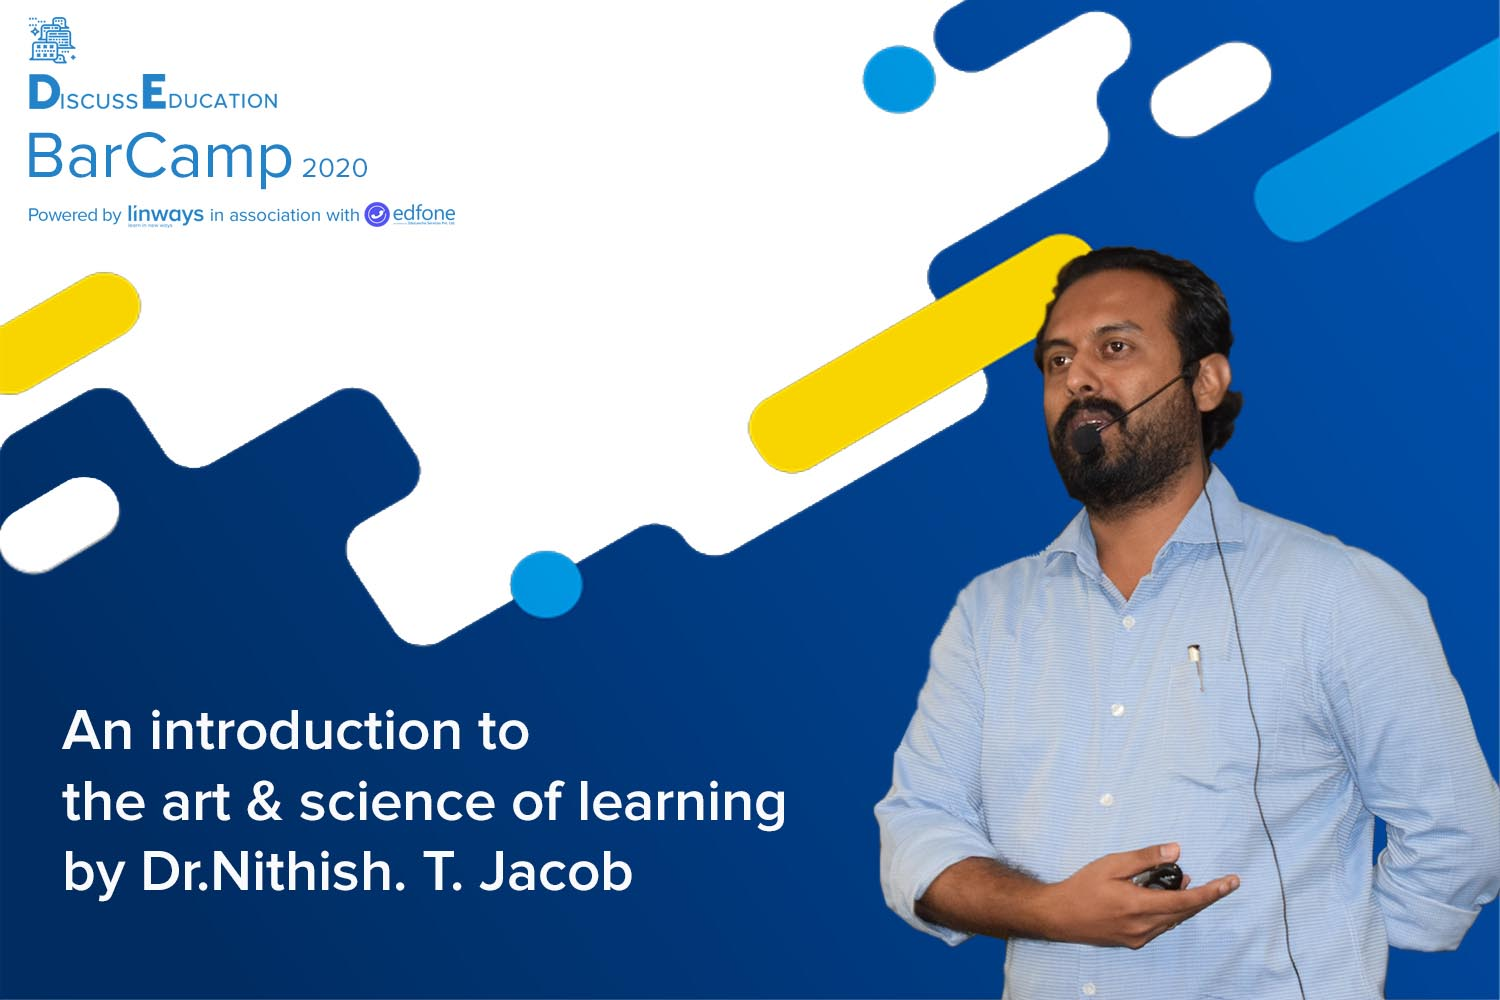 An introduction to the art & science of learning by Dr. Nithish. T. Jacob